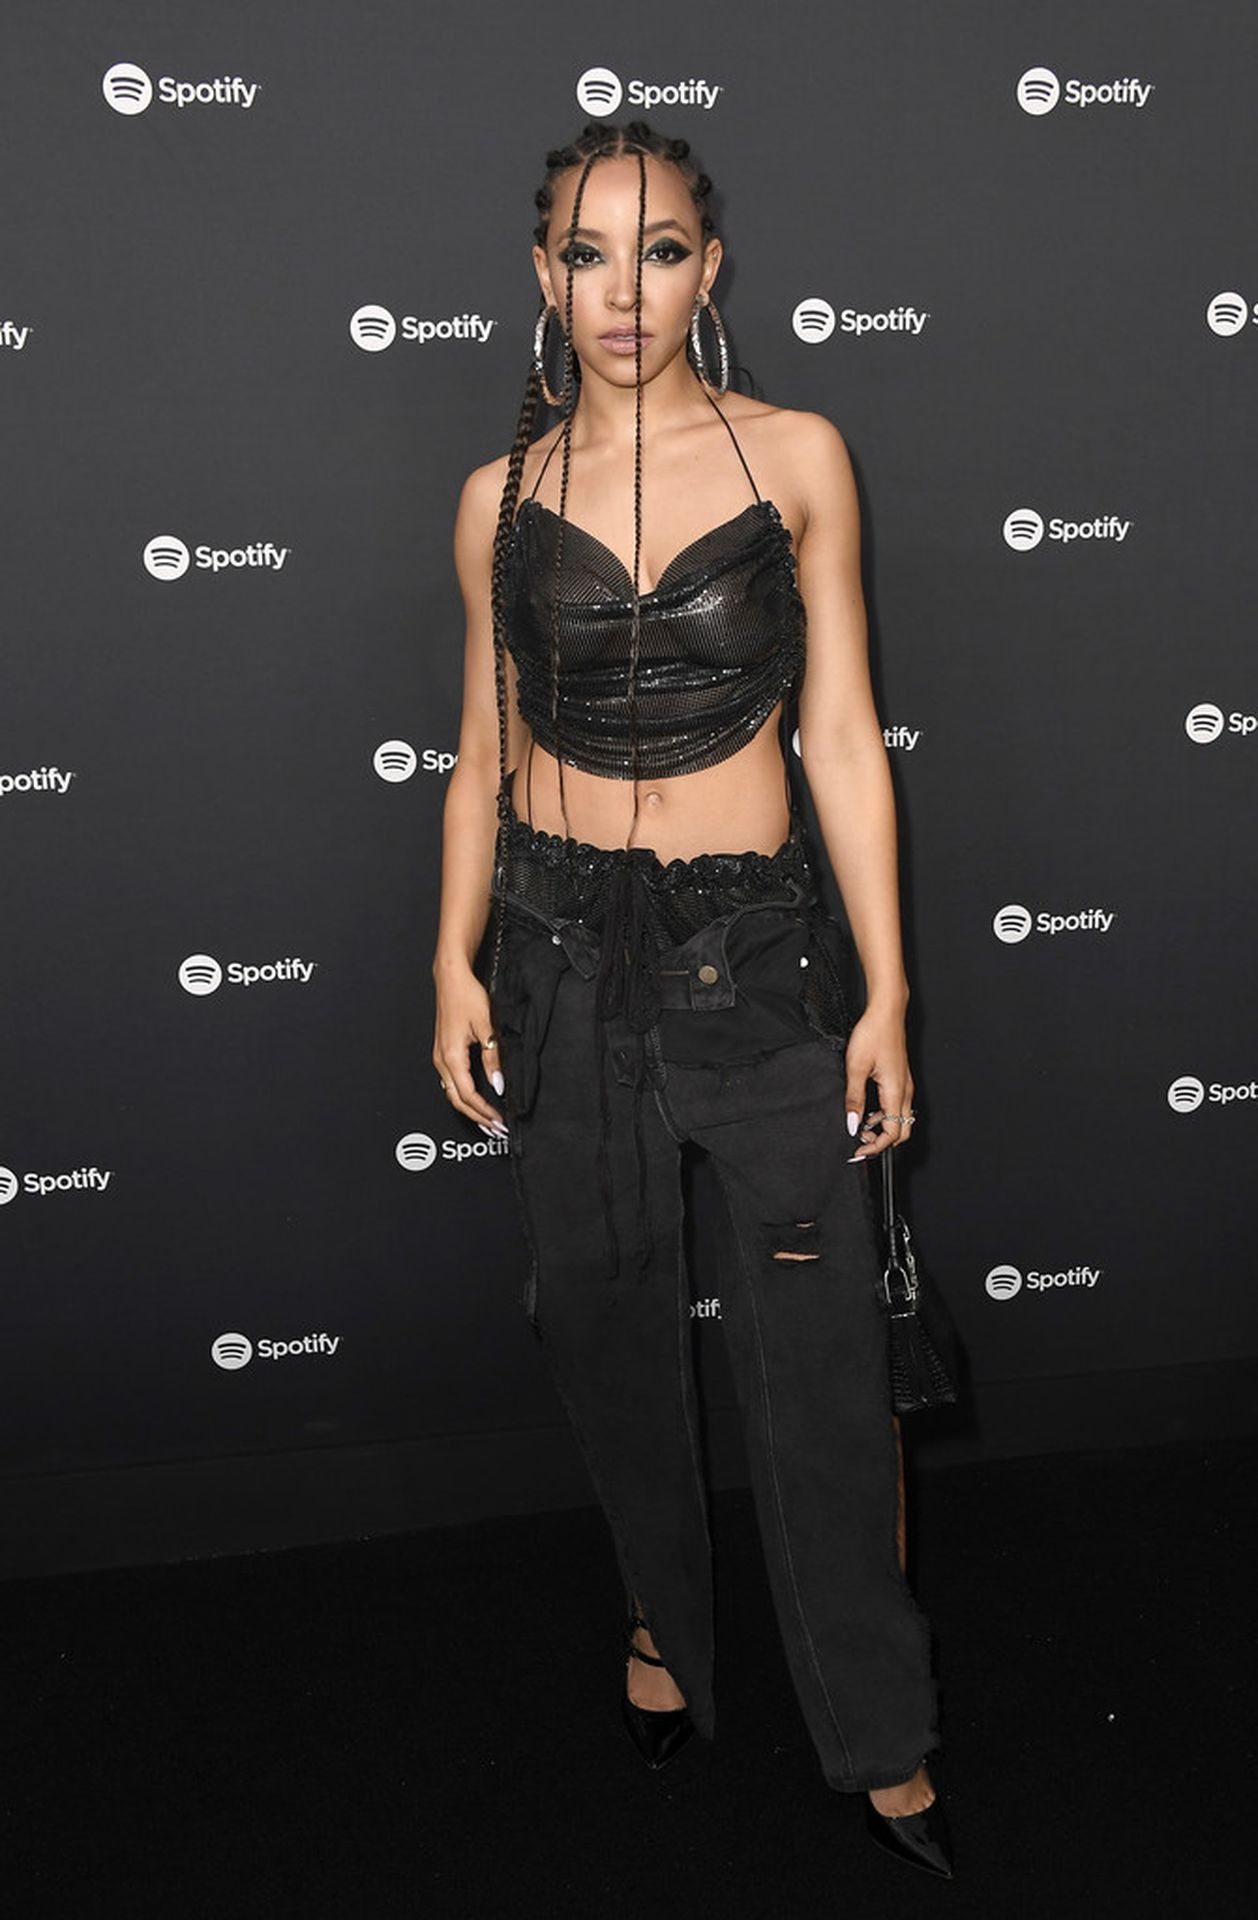 Tinashe Flaunts Her Tits At The Spotify Best New Artist Party 0003